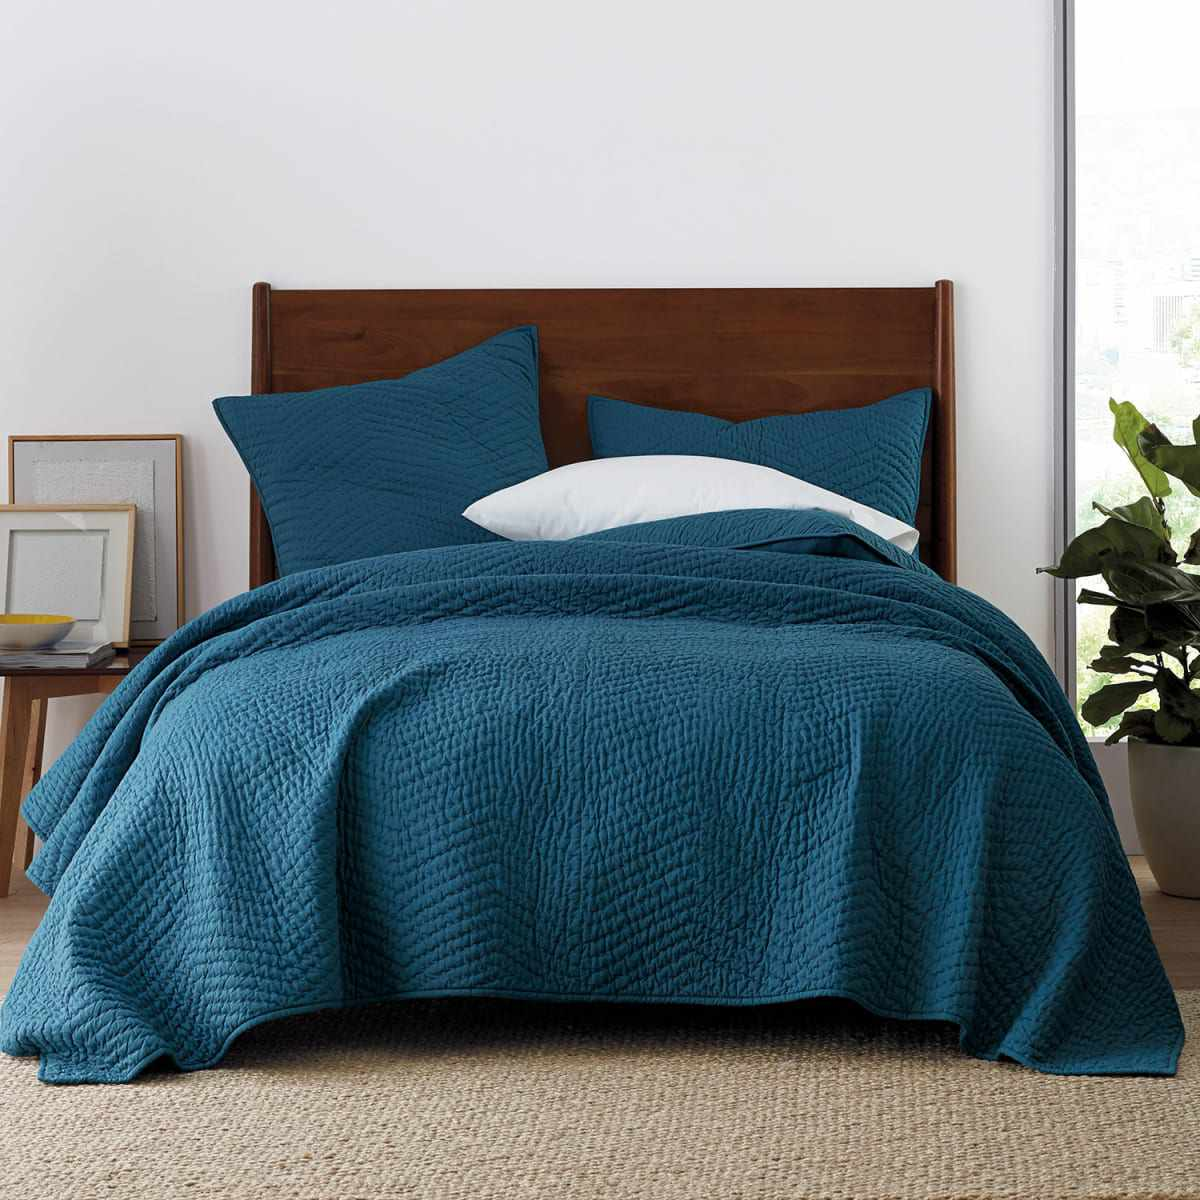 The Company Store Company Cotton Voile Quilt